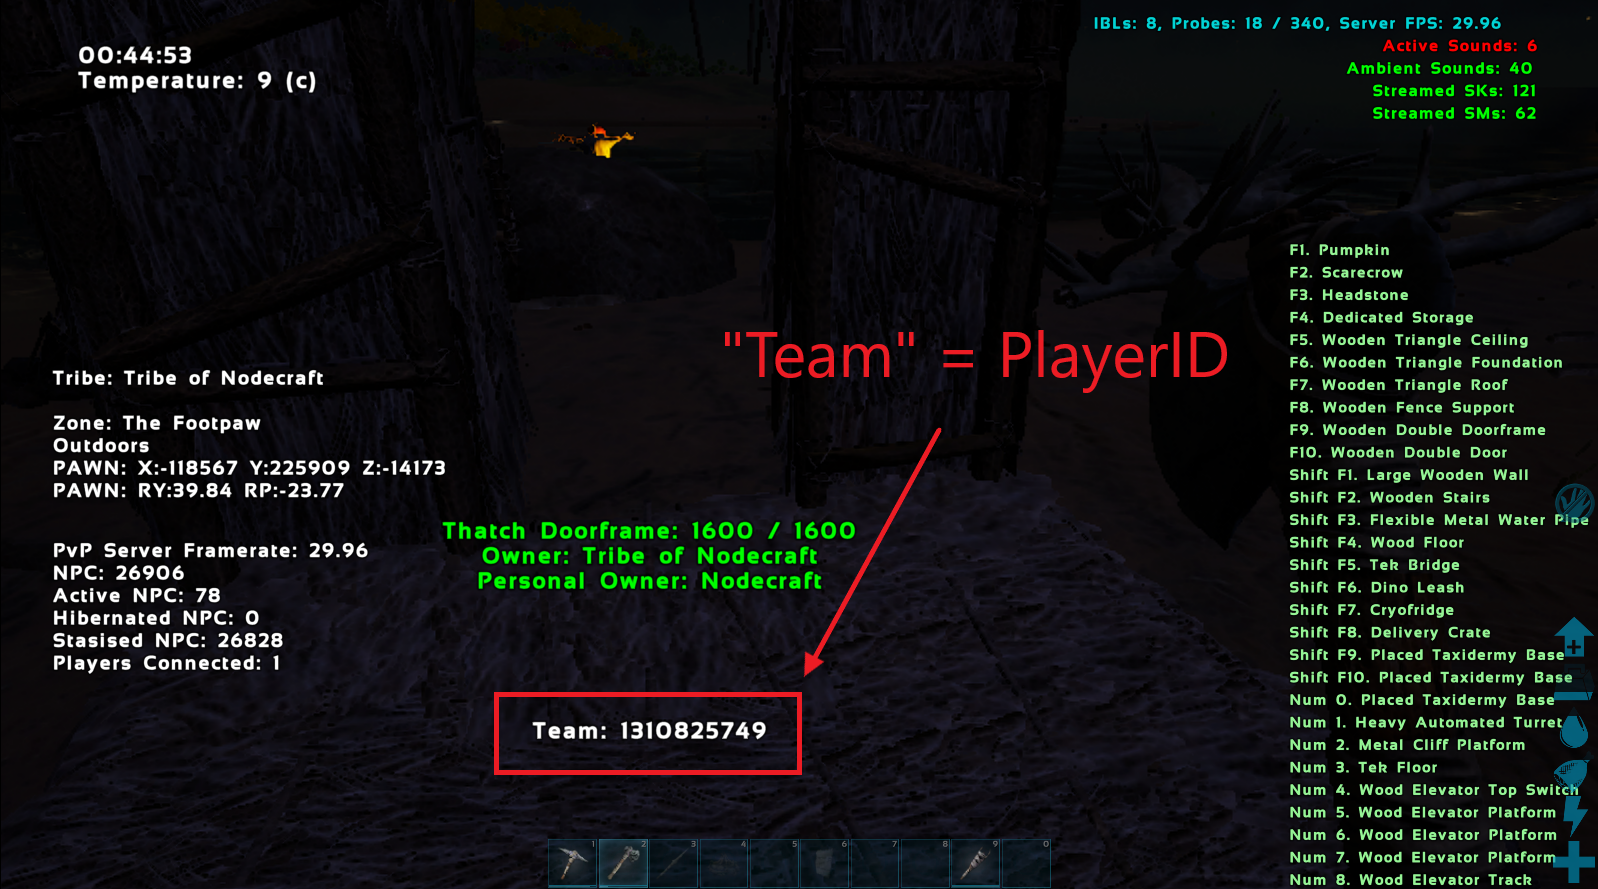 A view of the game ARK showing setplayercheat turned on